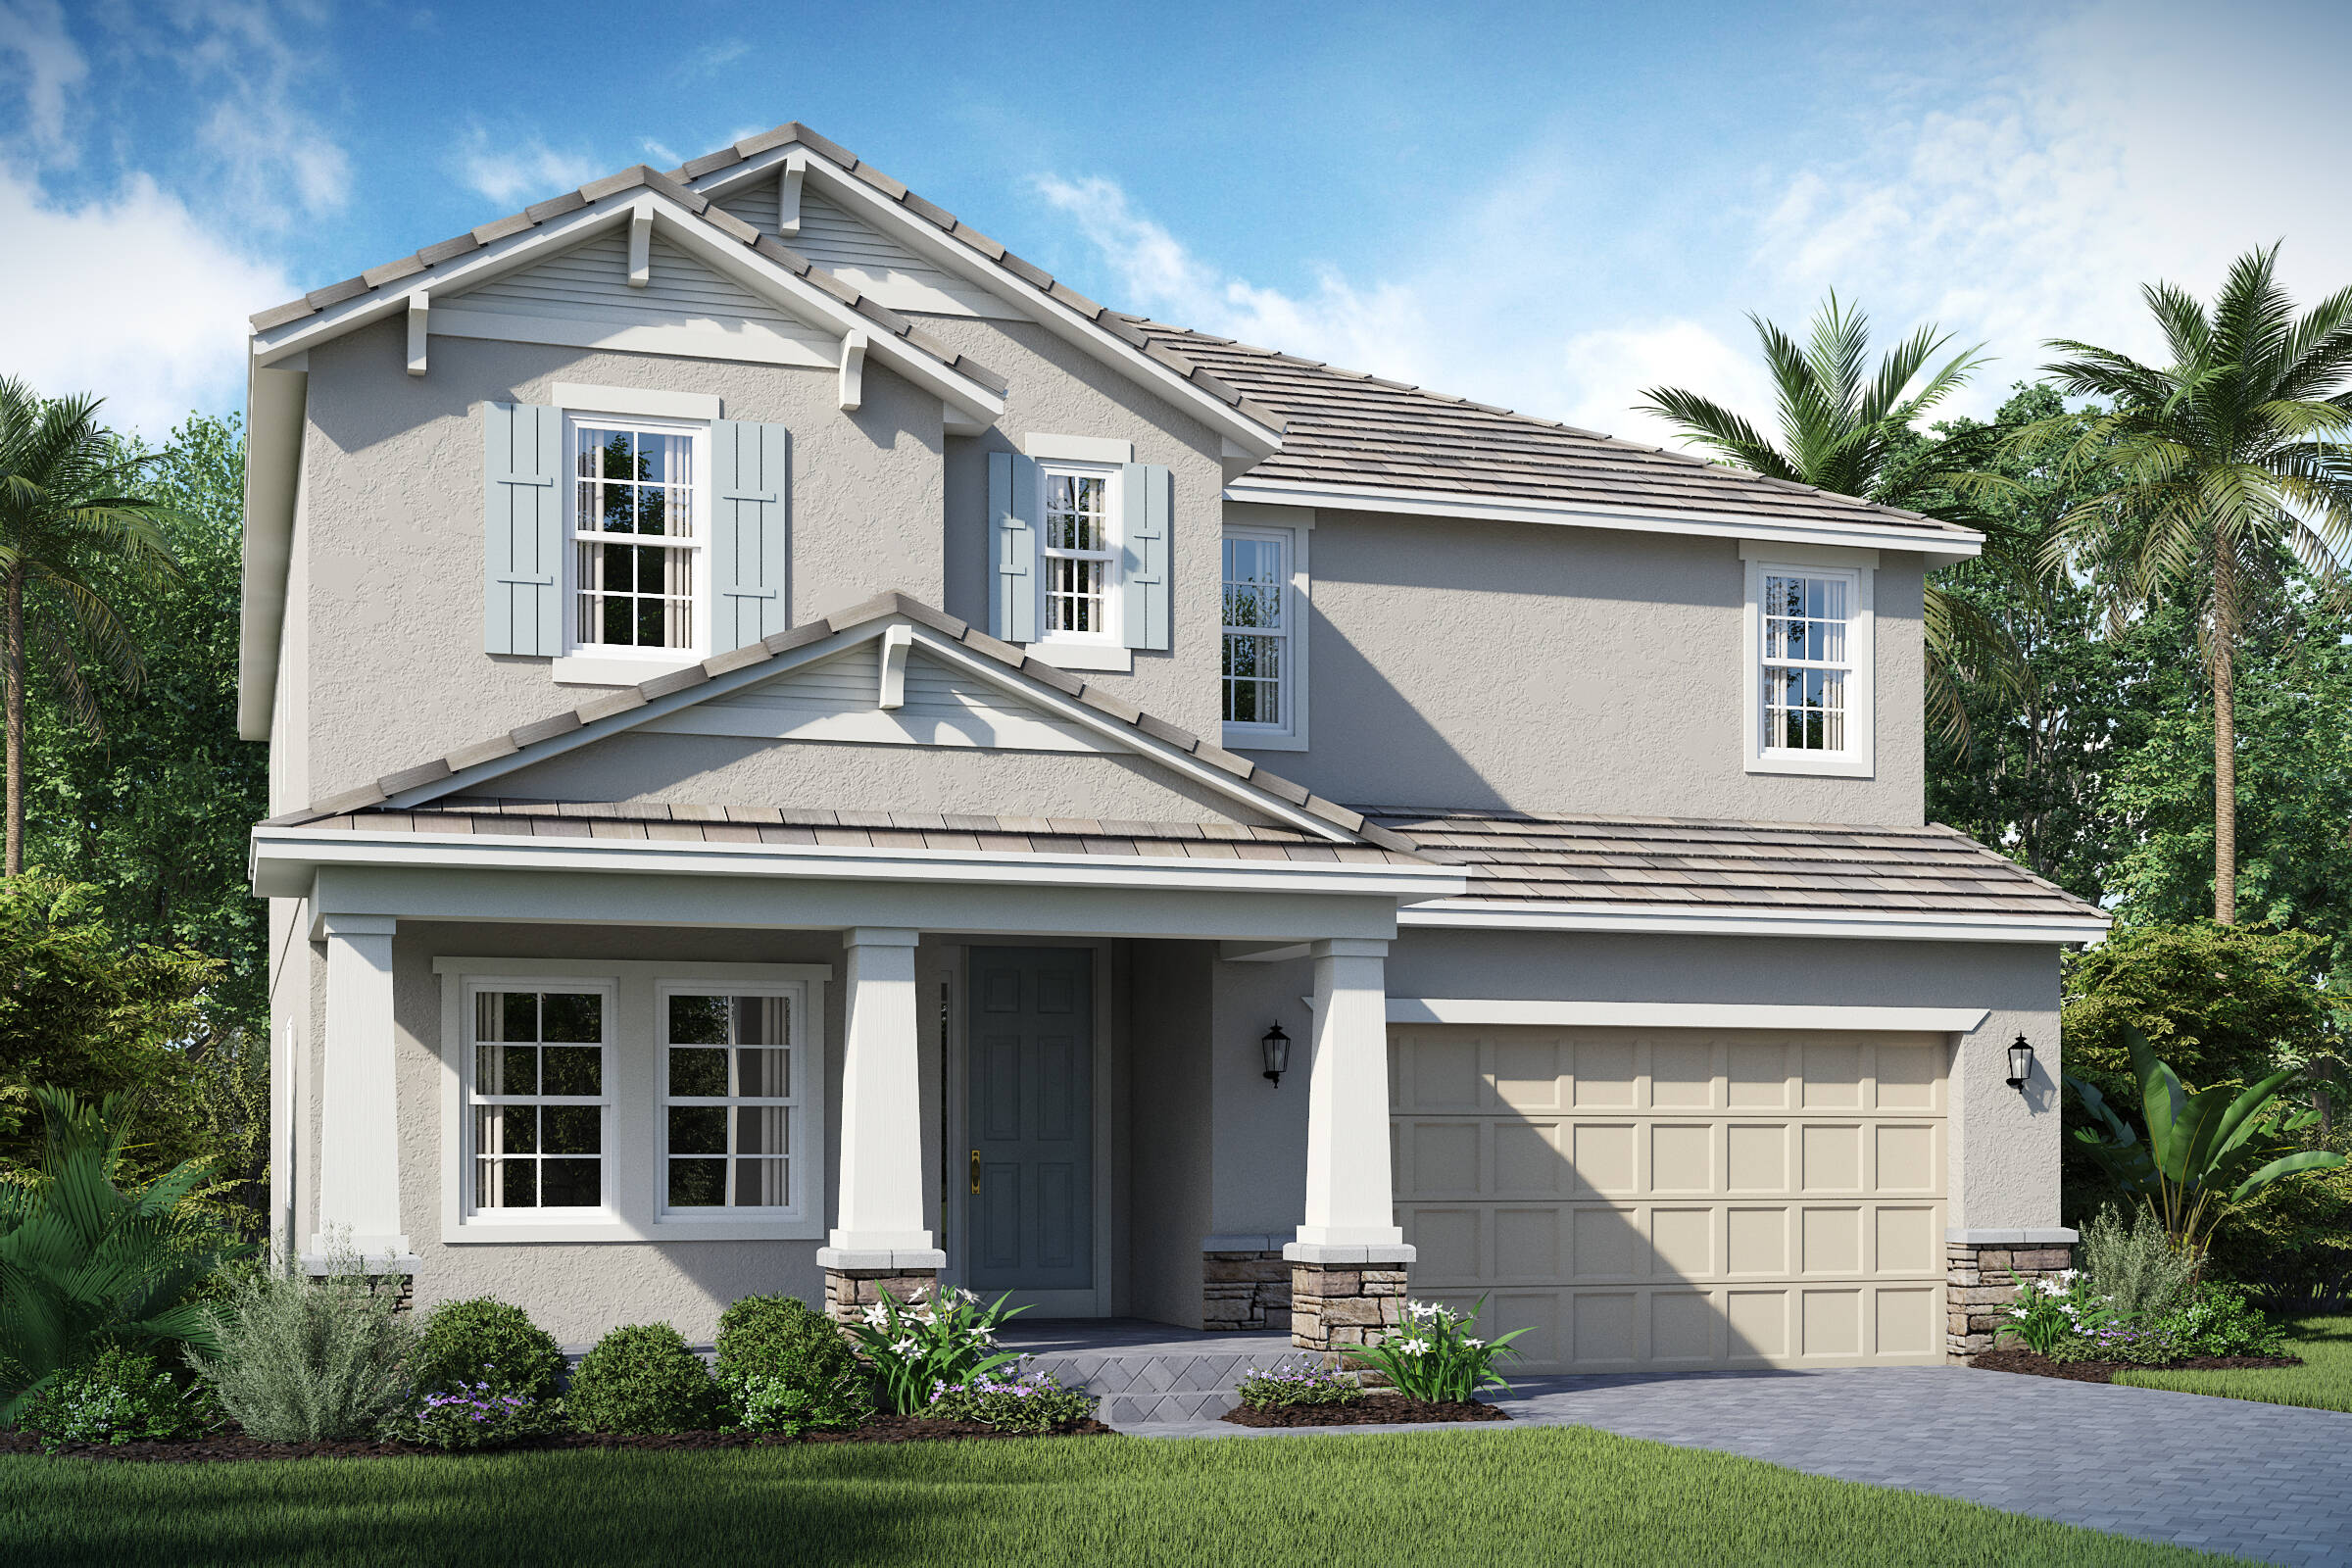 Michelson C exterior lake florence preserve new homes in orlando florida